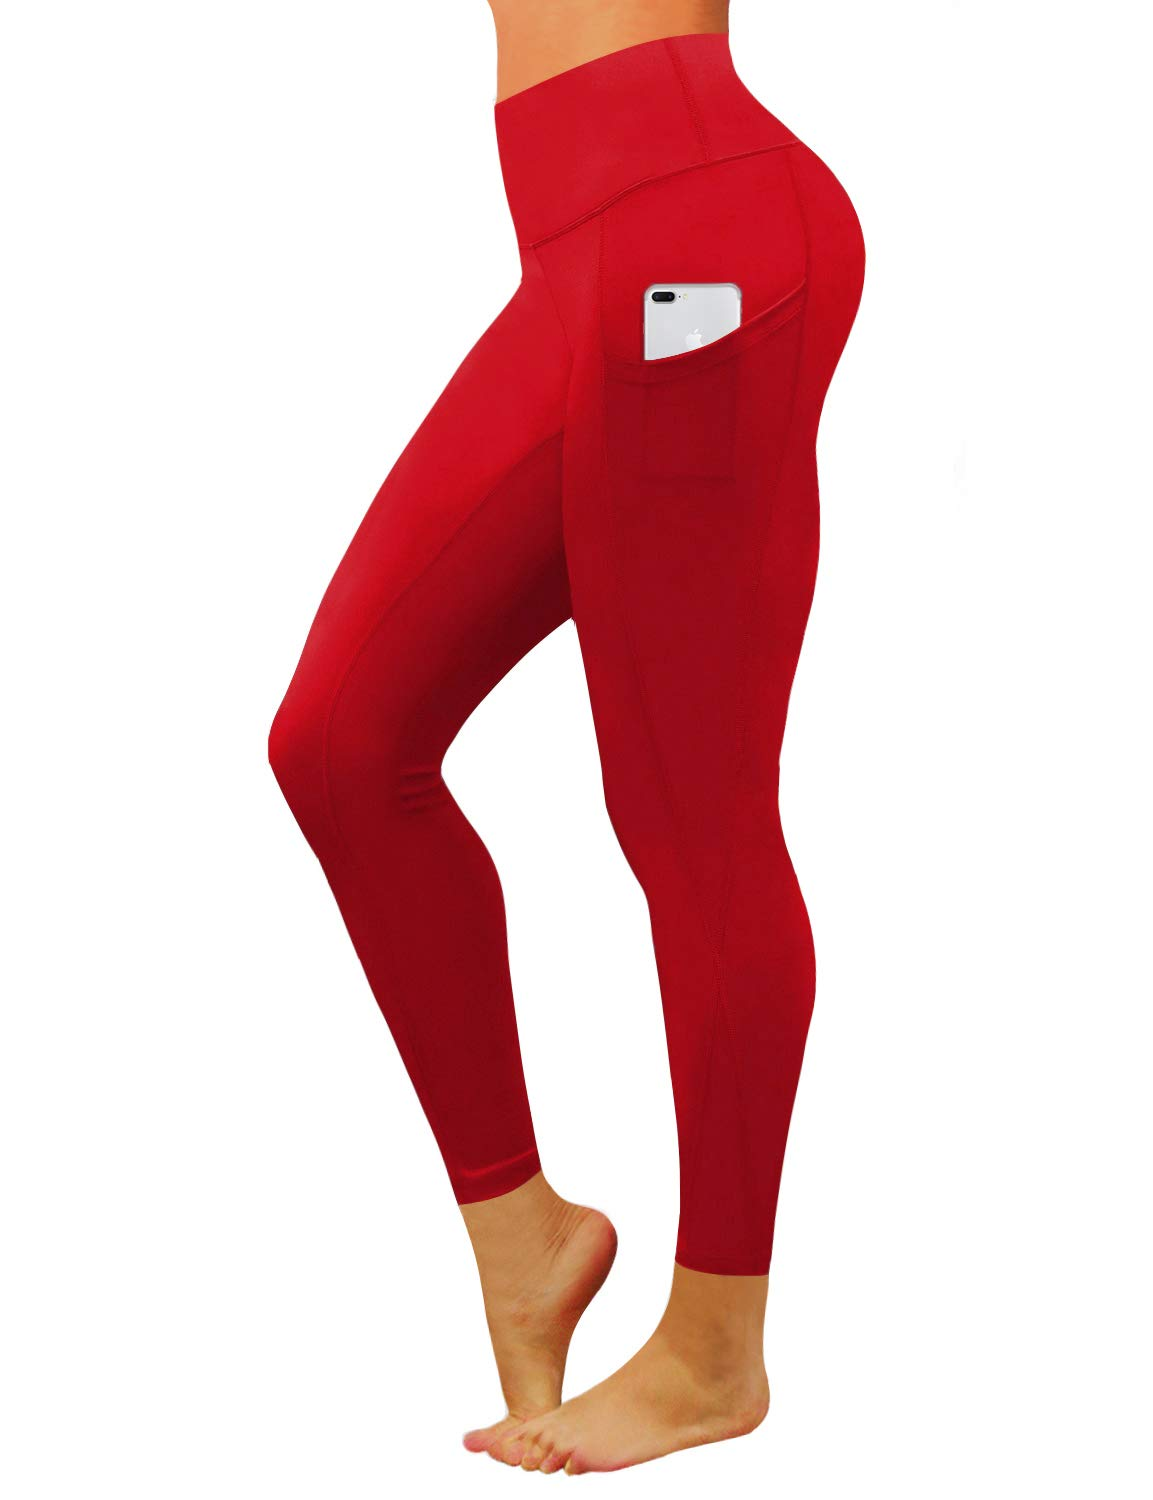 BUBBLELIME High Compression Yoga Pants Out Pocket Running Pants Power Flex Nylon Span Moisture Wicking UPF30+, Bwwb010 Scarlet, X-Small